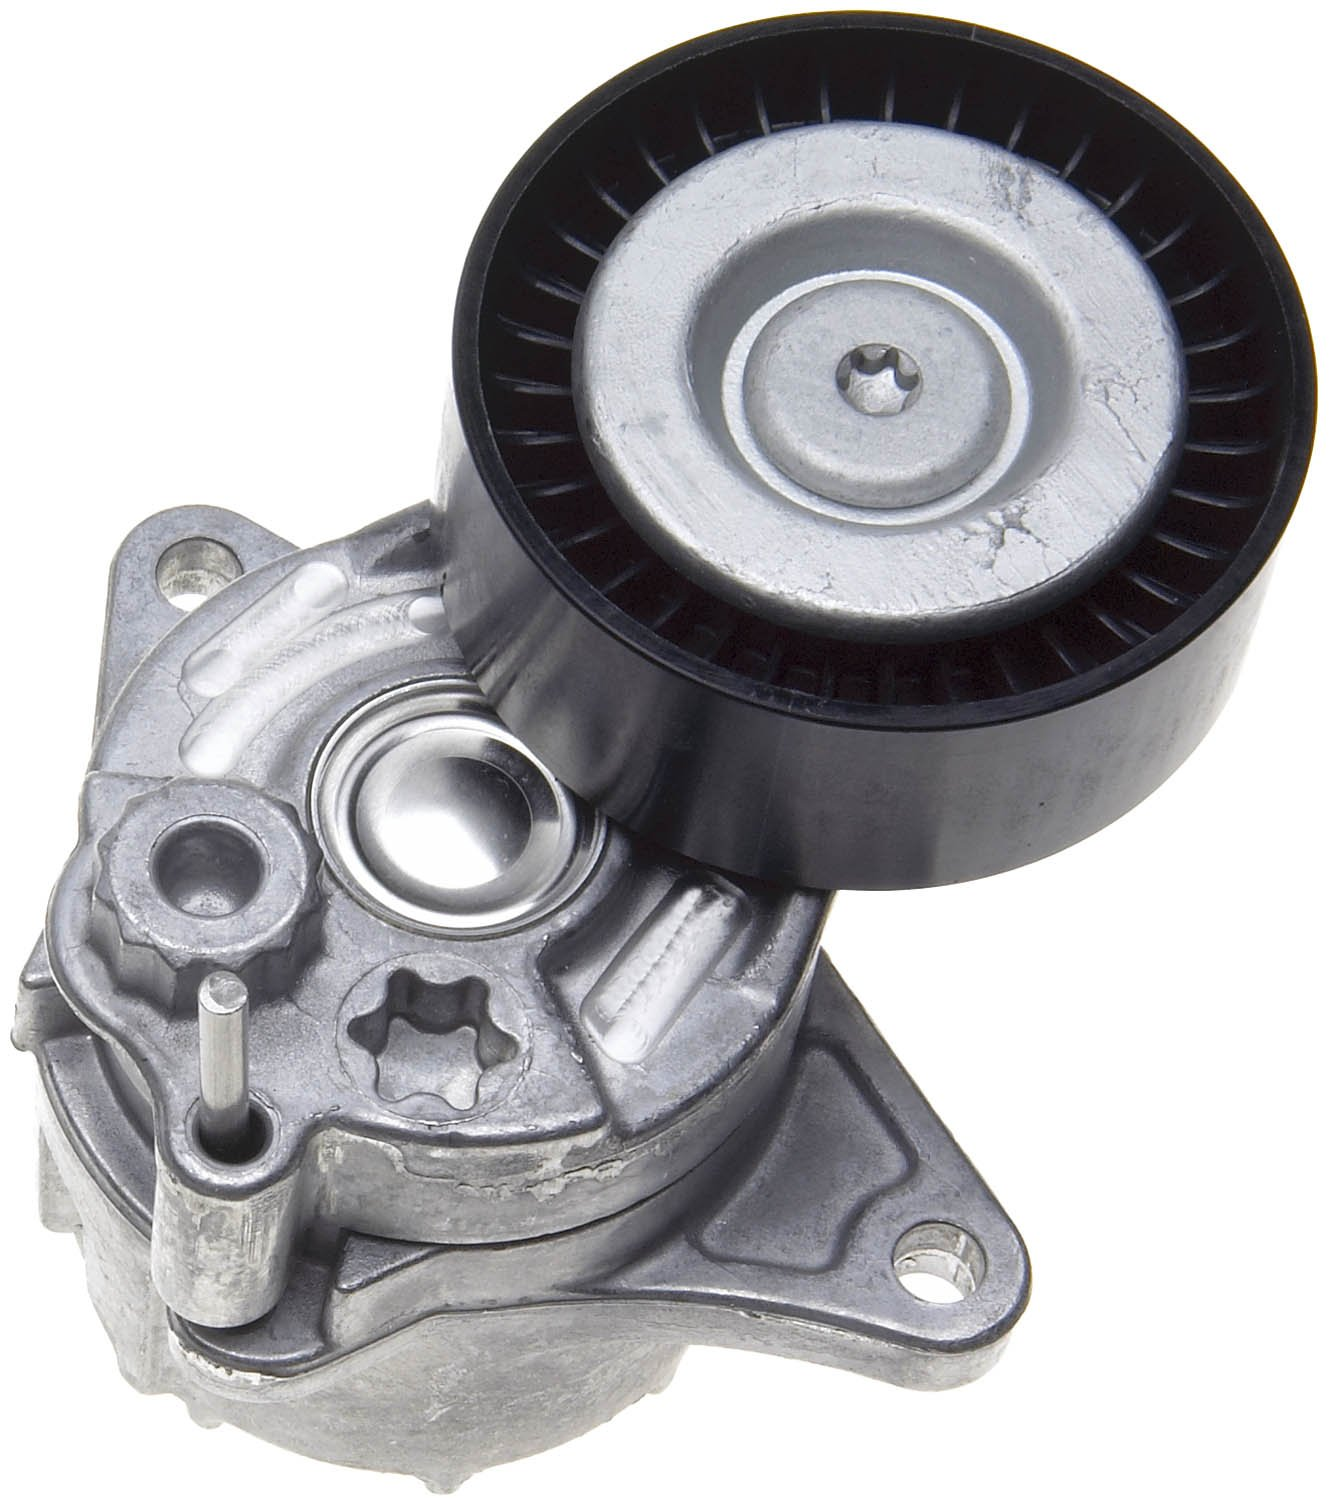 ACDelco 38415 Professional Automatic Belt Tensioner and Pulley Assembly